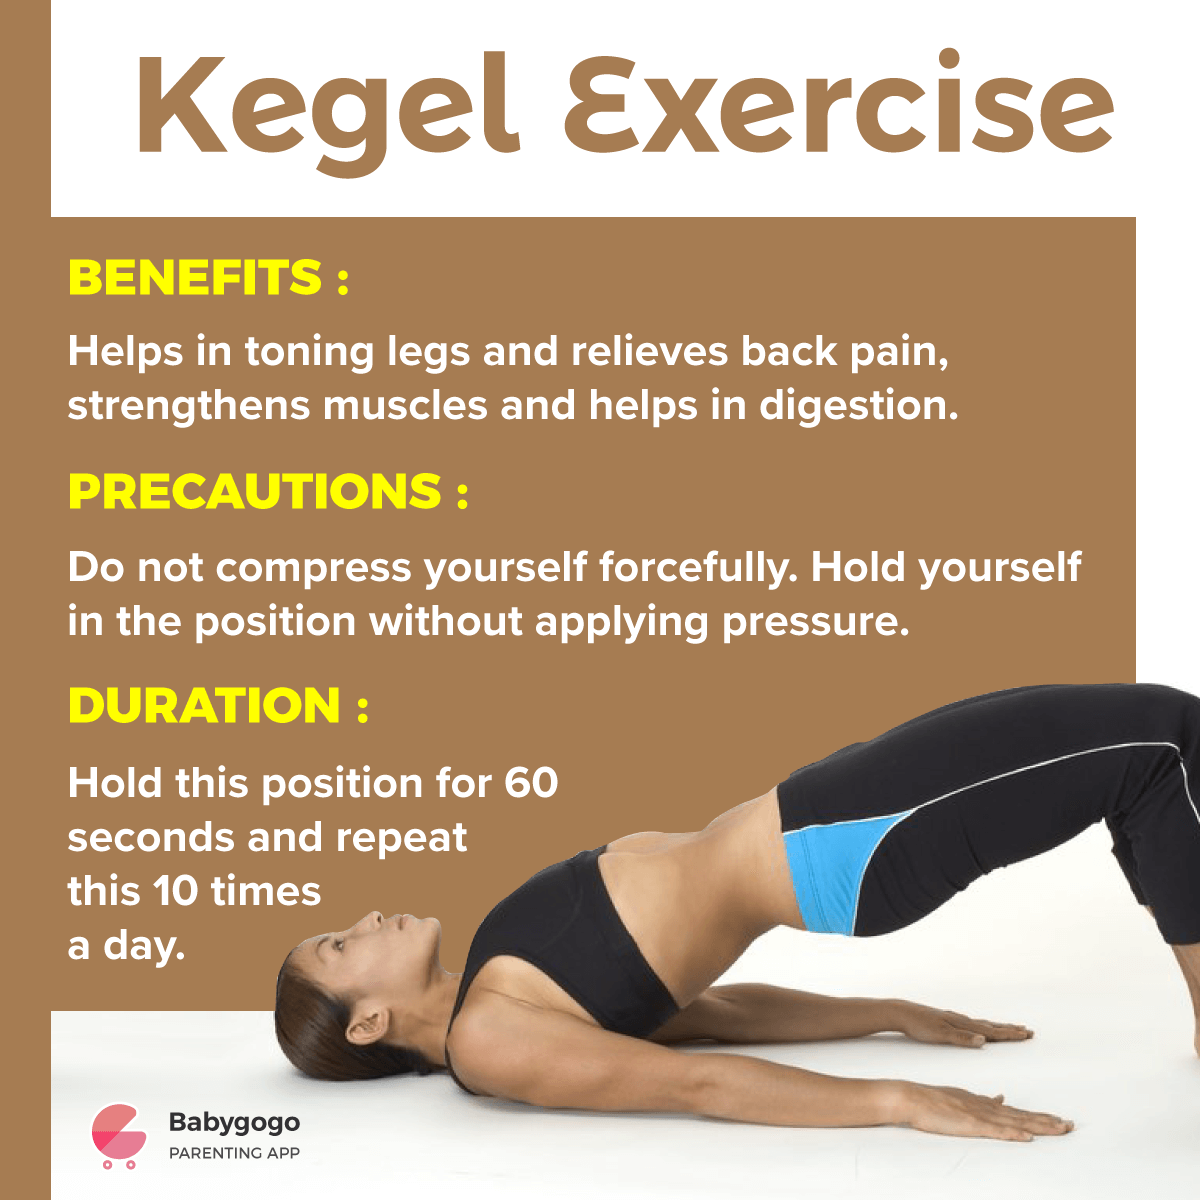 Kegel Exercise - Yoga Exercise